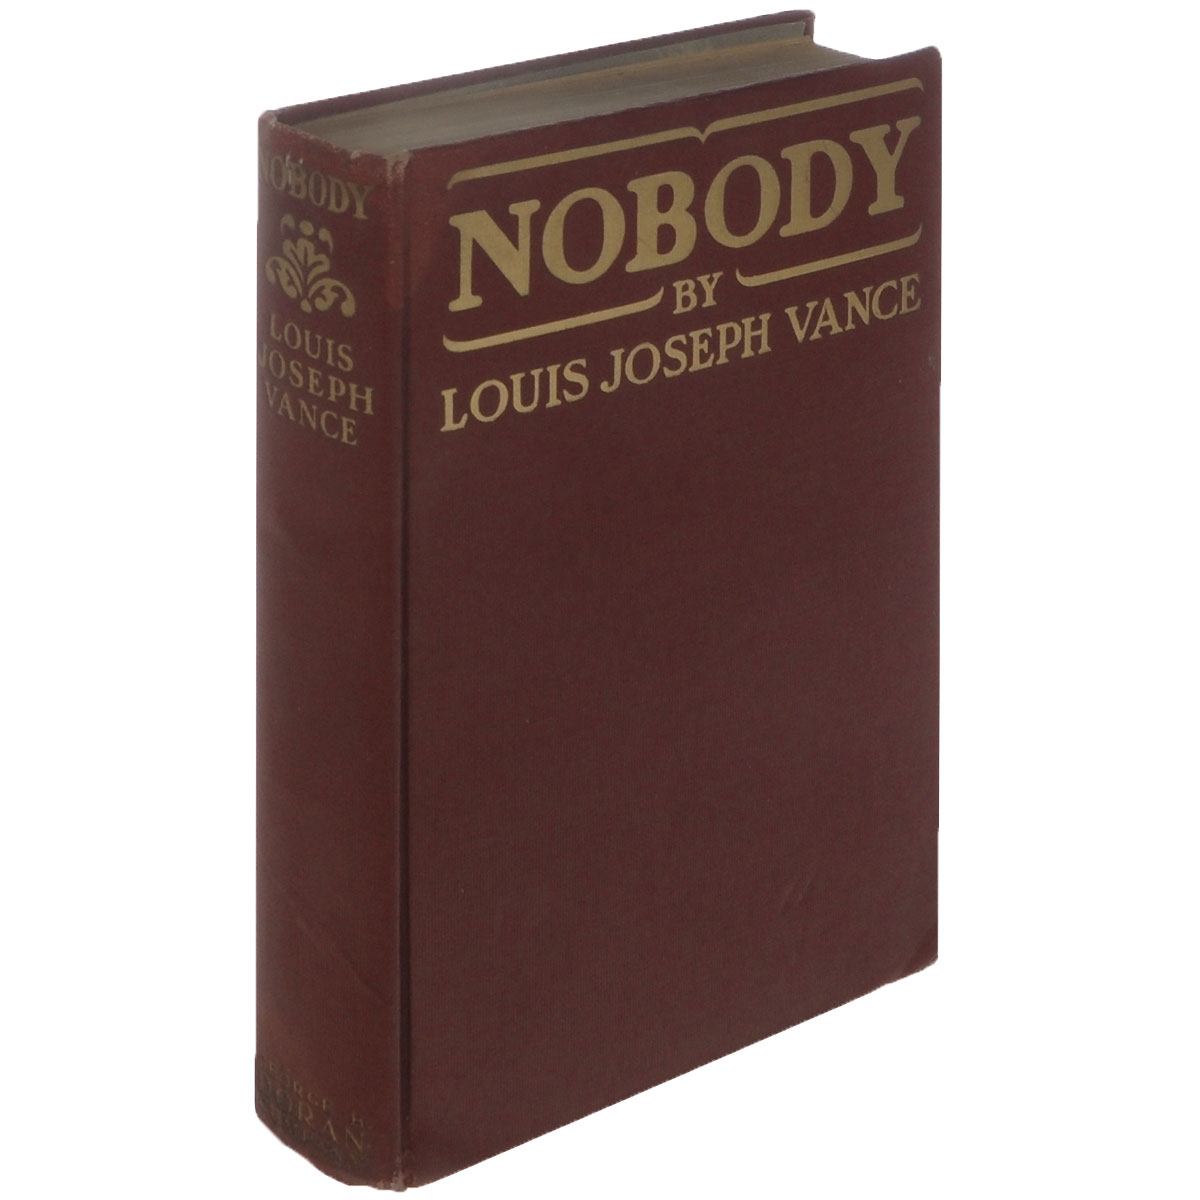 Nobody0120710Нью Йорк, 1915. George H. Dorah Сompany. Издательский переплет, сохранность хорошая. На обложке потертости, пятна. Louis Joseph Vance was an American novelist, born in Washington, D. C., and educated in the preparatory department of the Brooklyn Polytechnic Institute. He wrote short stories and verse after 1901, then composed many popular novels.